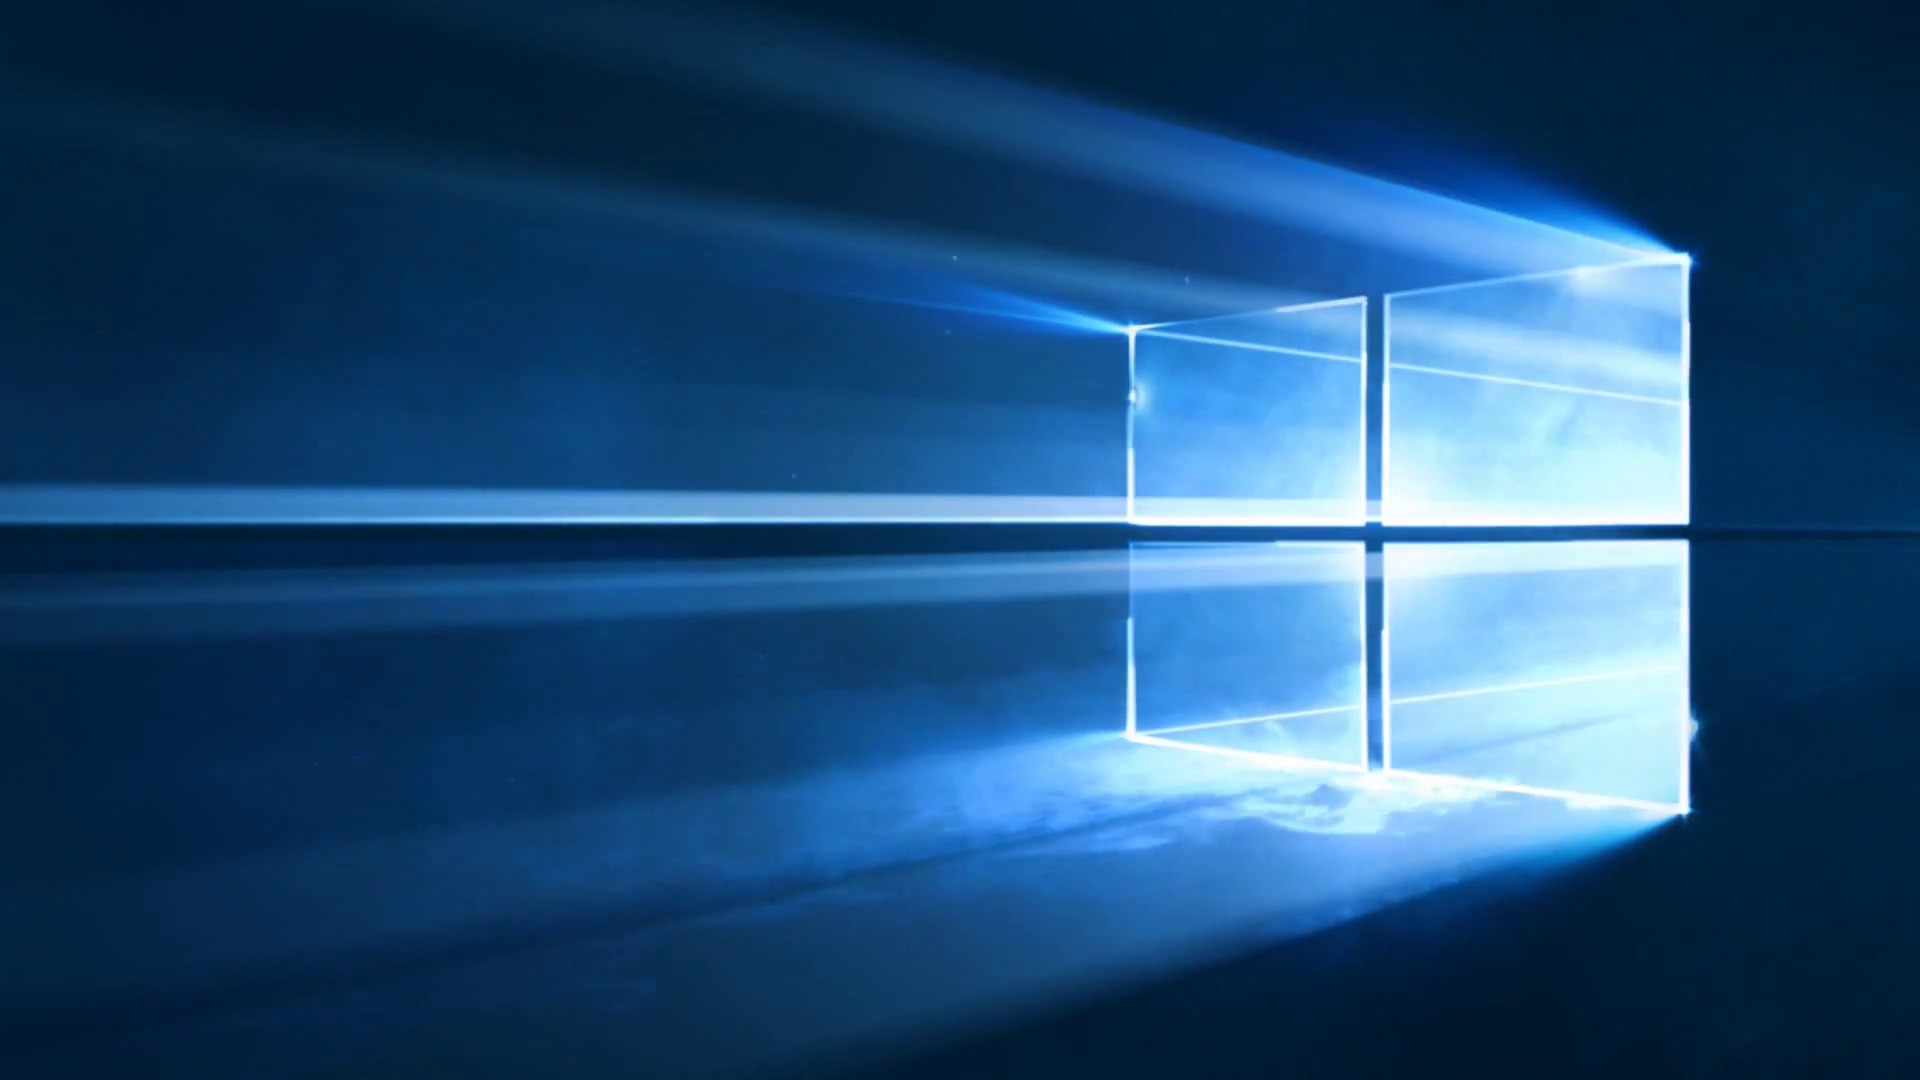 Compra una licencia original de Windows 10 barata